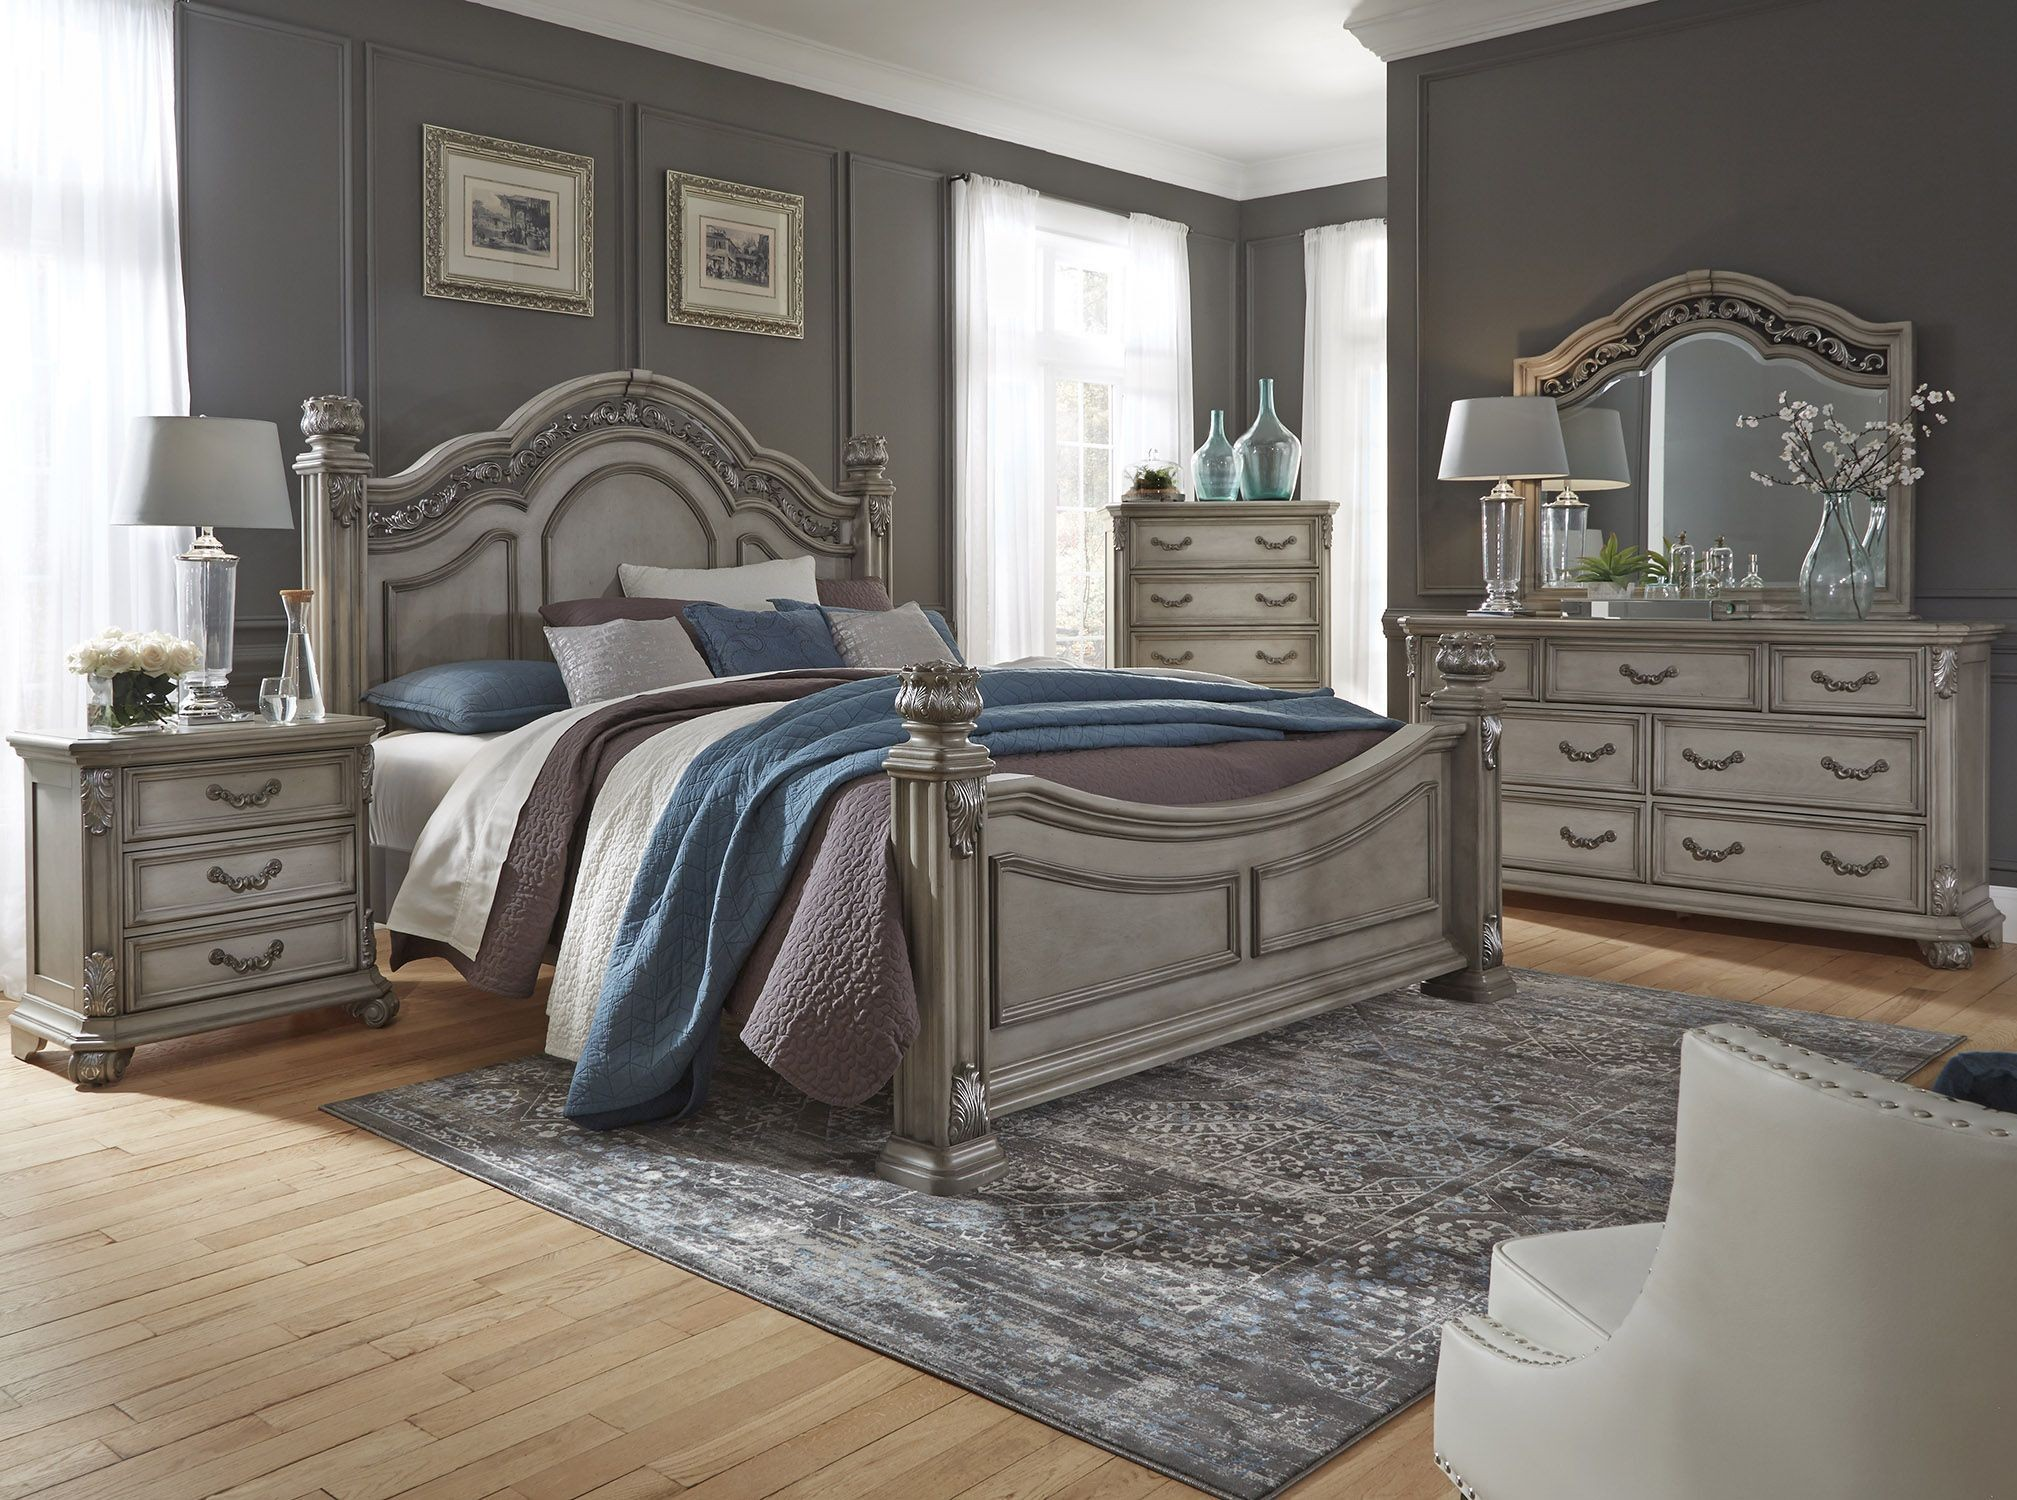 messina estates bedroom gray poster bedroom set from liberty coleman furniture. Black Bedroom Furniture Sets. Home Design Ideas